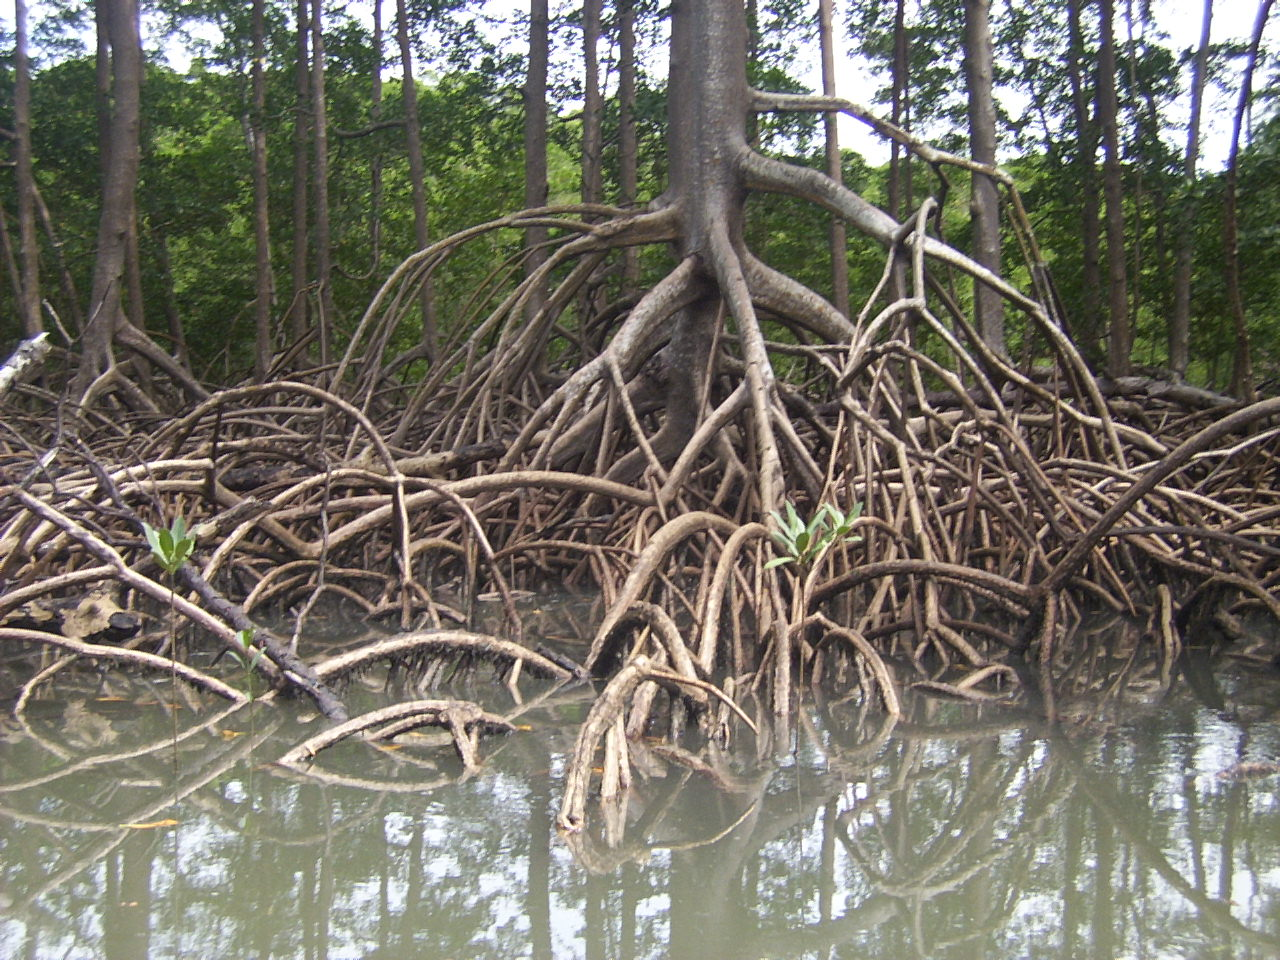 Stilt roots of a Rhizophora mangrove tree captured on a small river